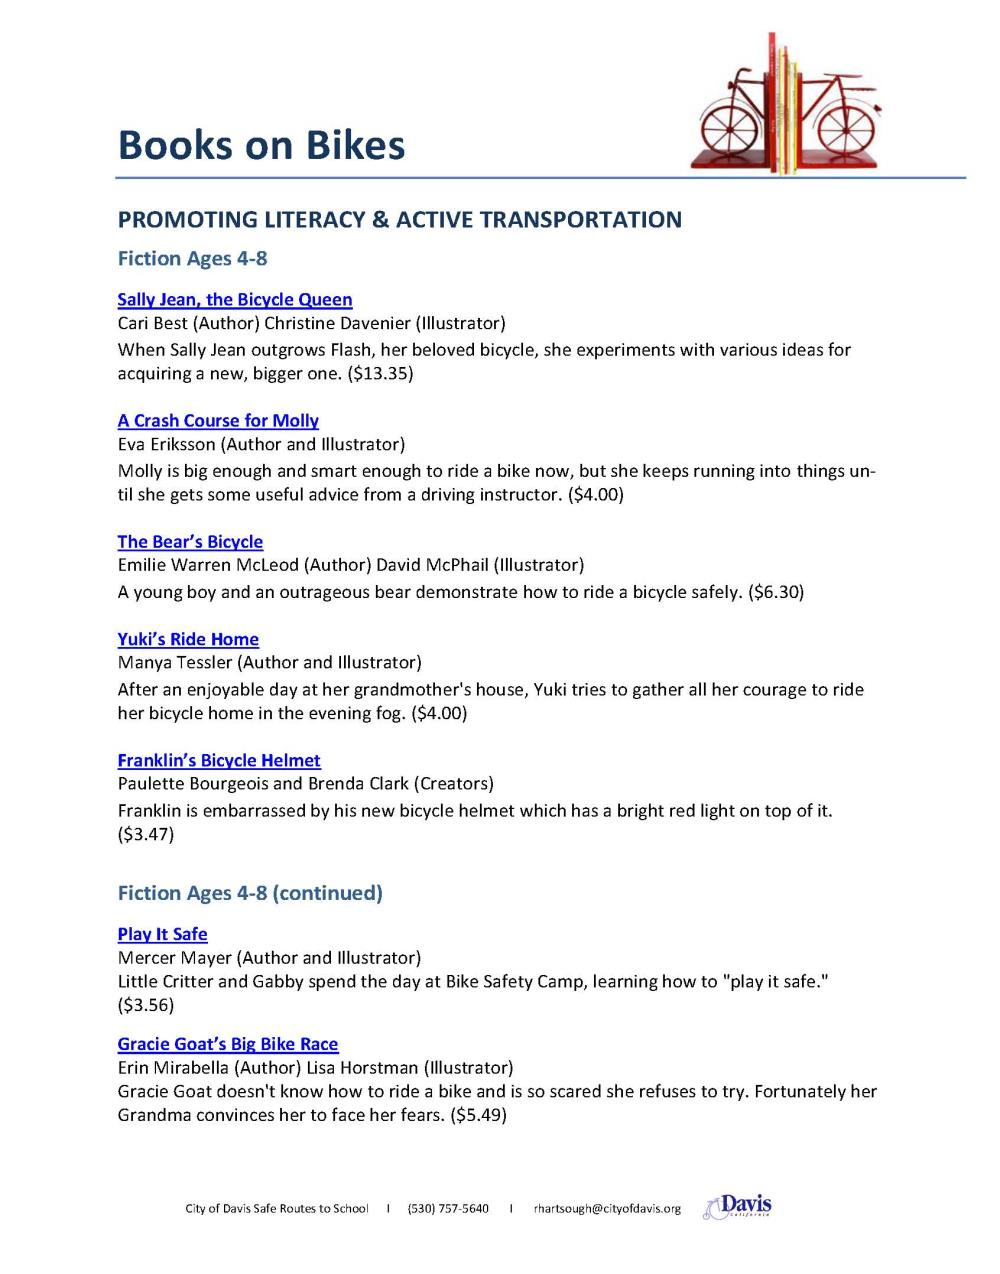 Books On Bikes cover_Page_1